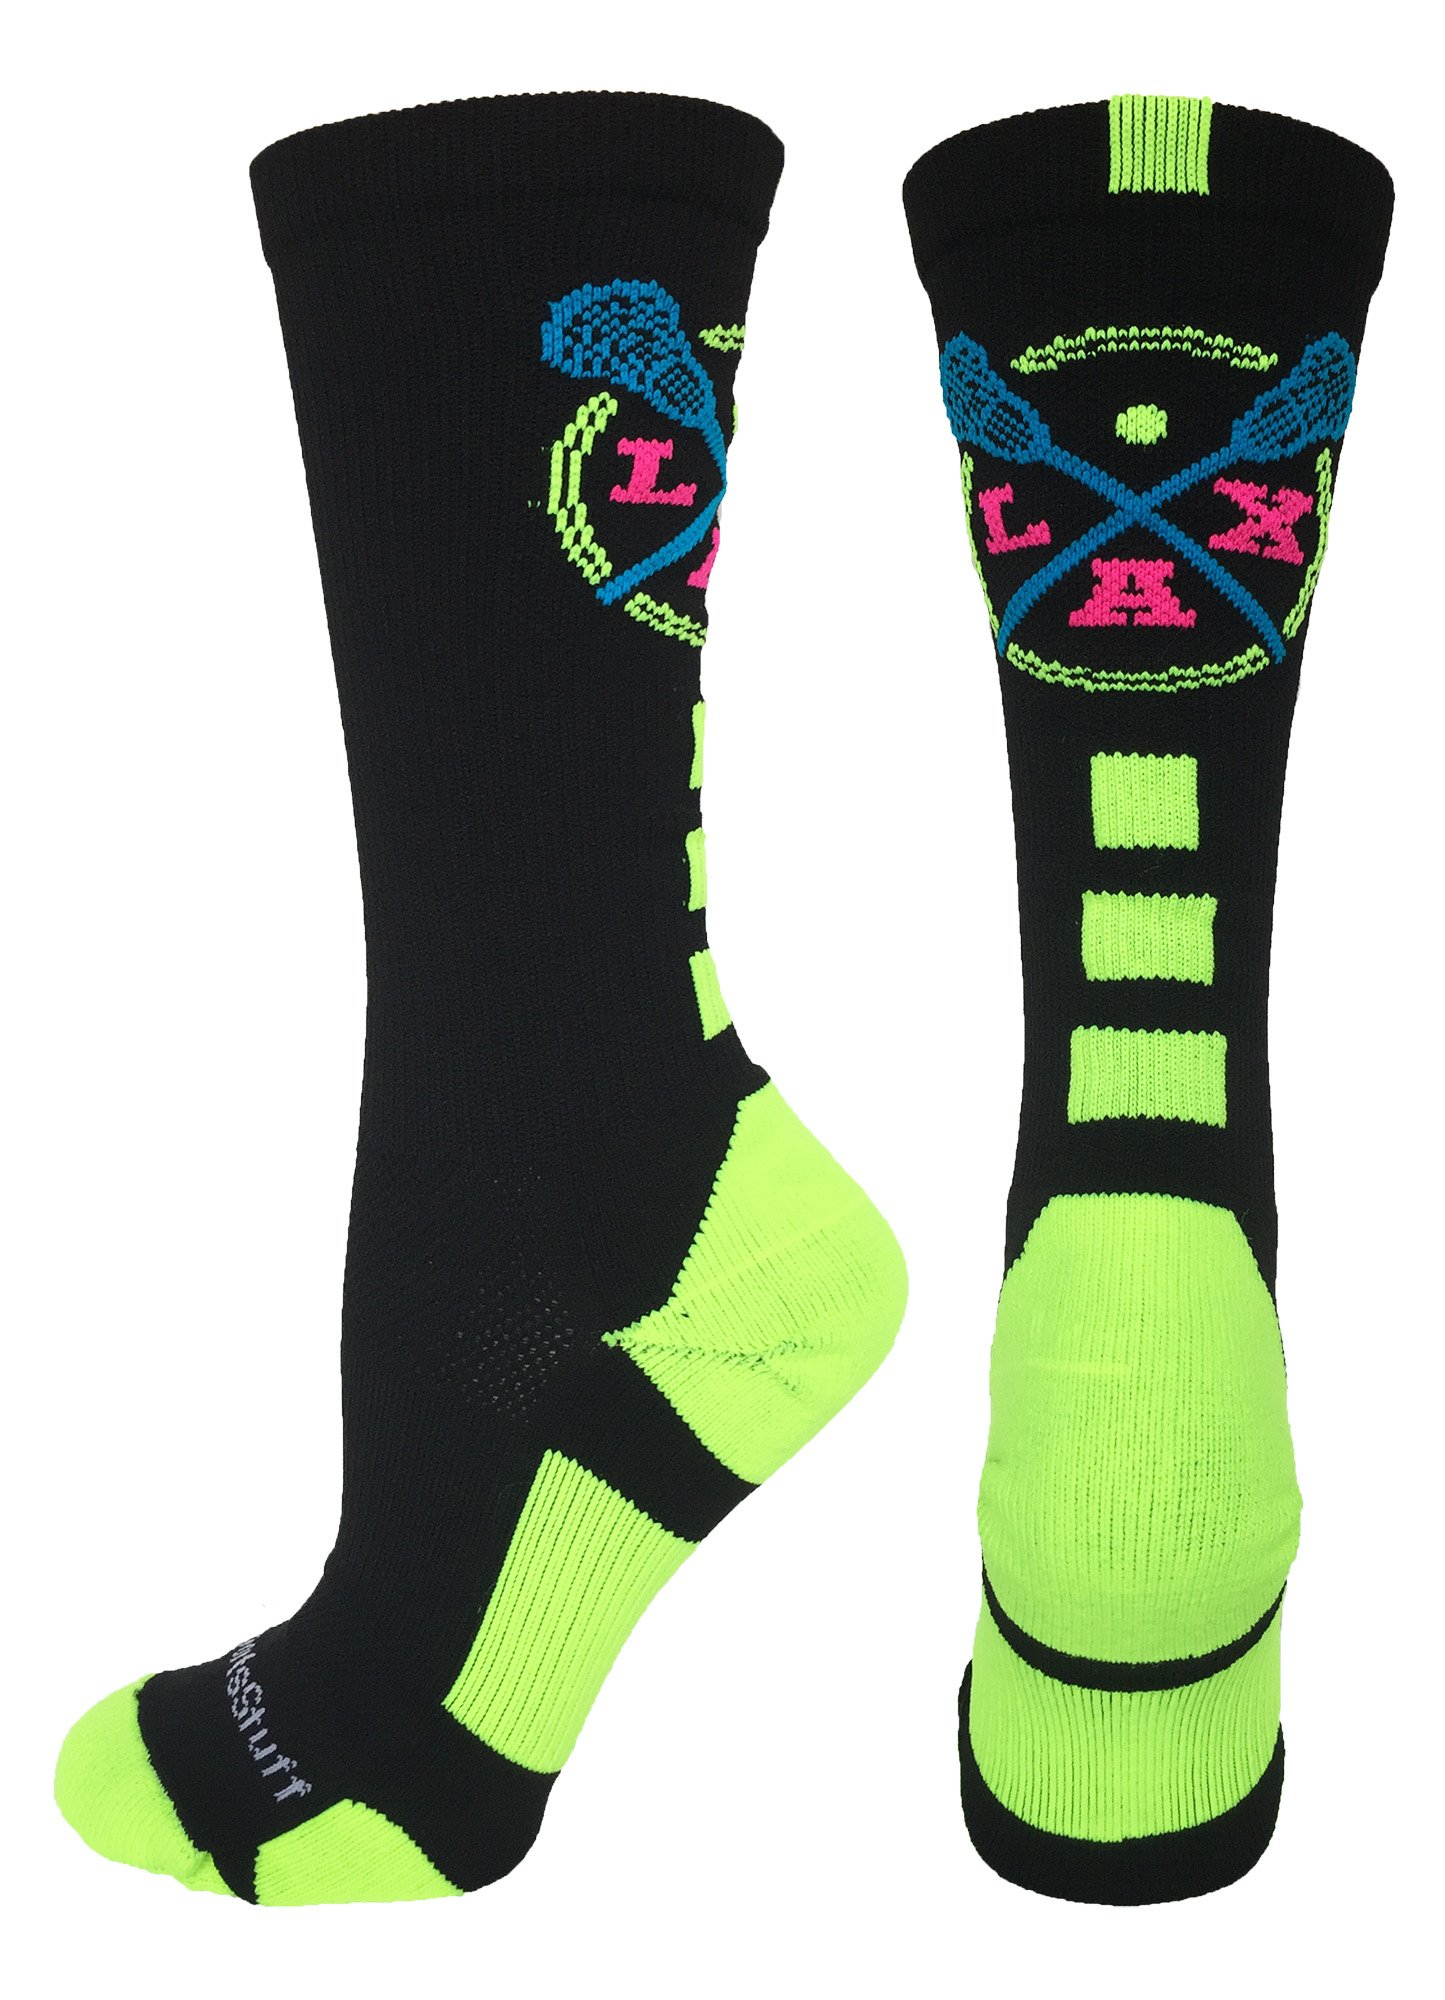 MadSportsStuff LAX Lacrosse Socks with Lacrosse Sticks Athletic Crew Socks (Black/Electric Green, Small) by MadSportsStuff